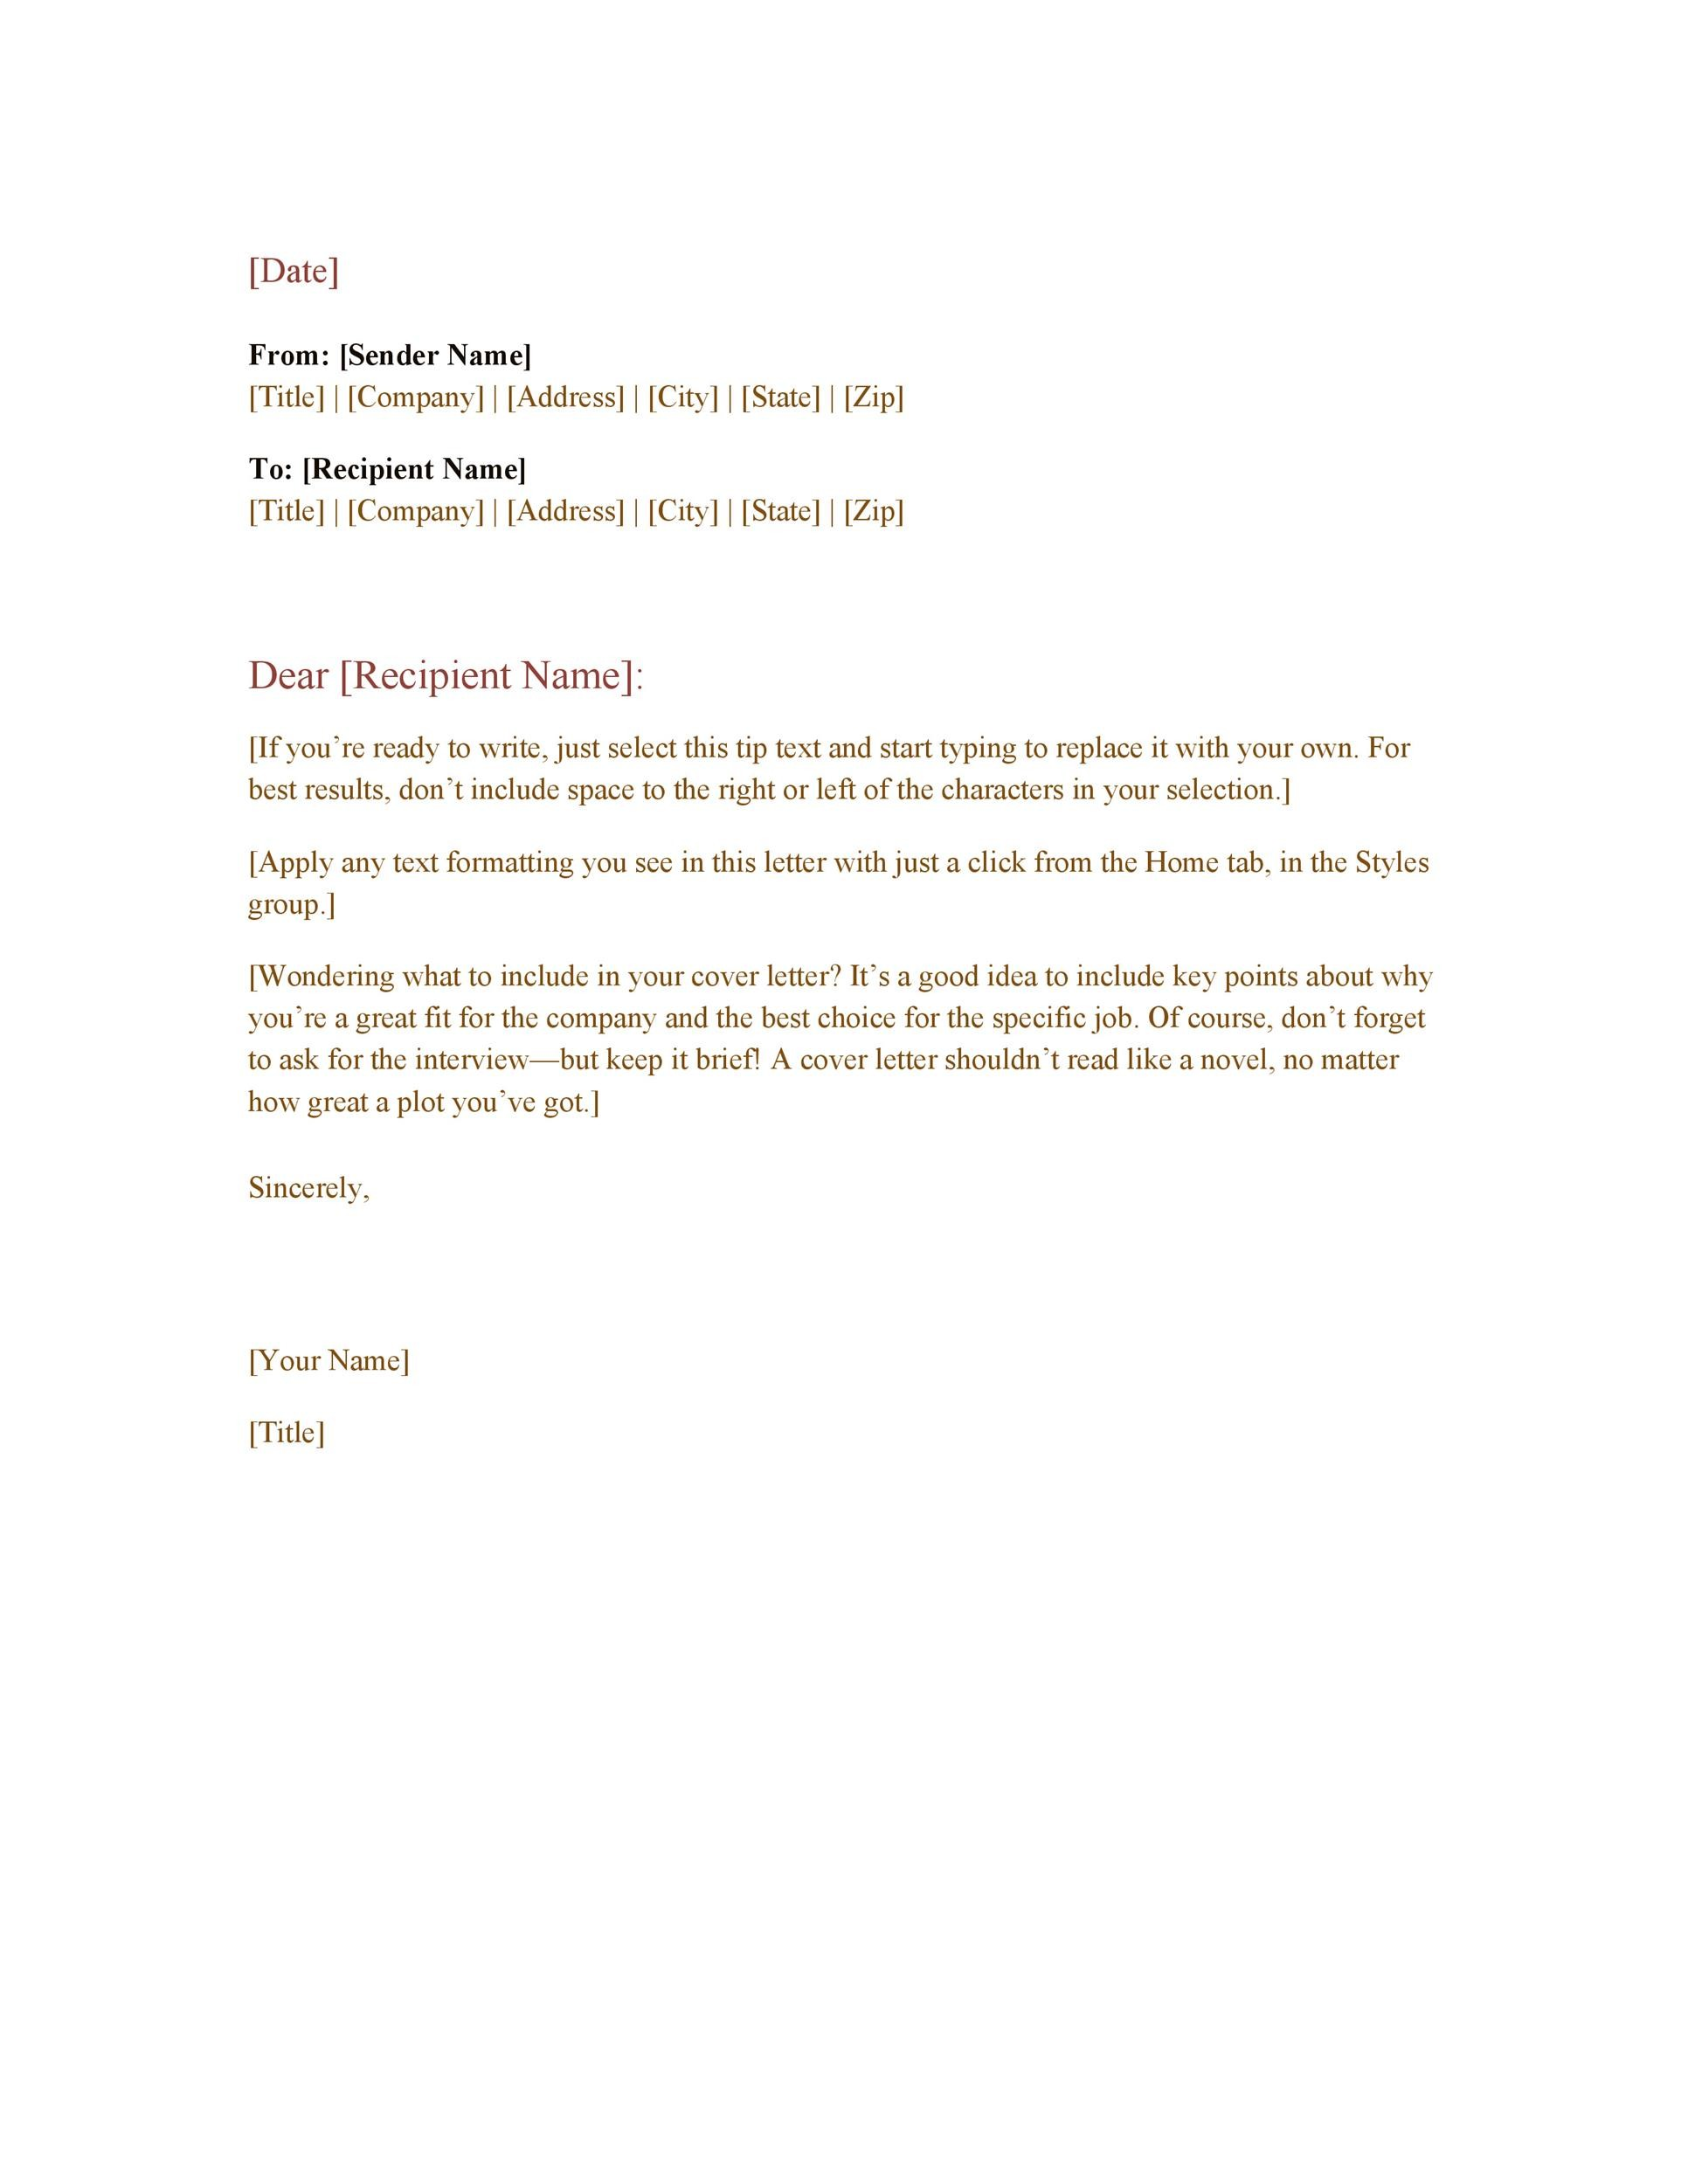 Free professional email example 06